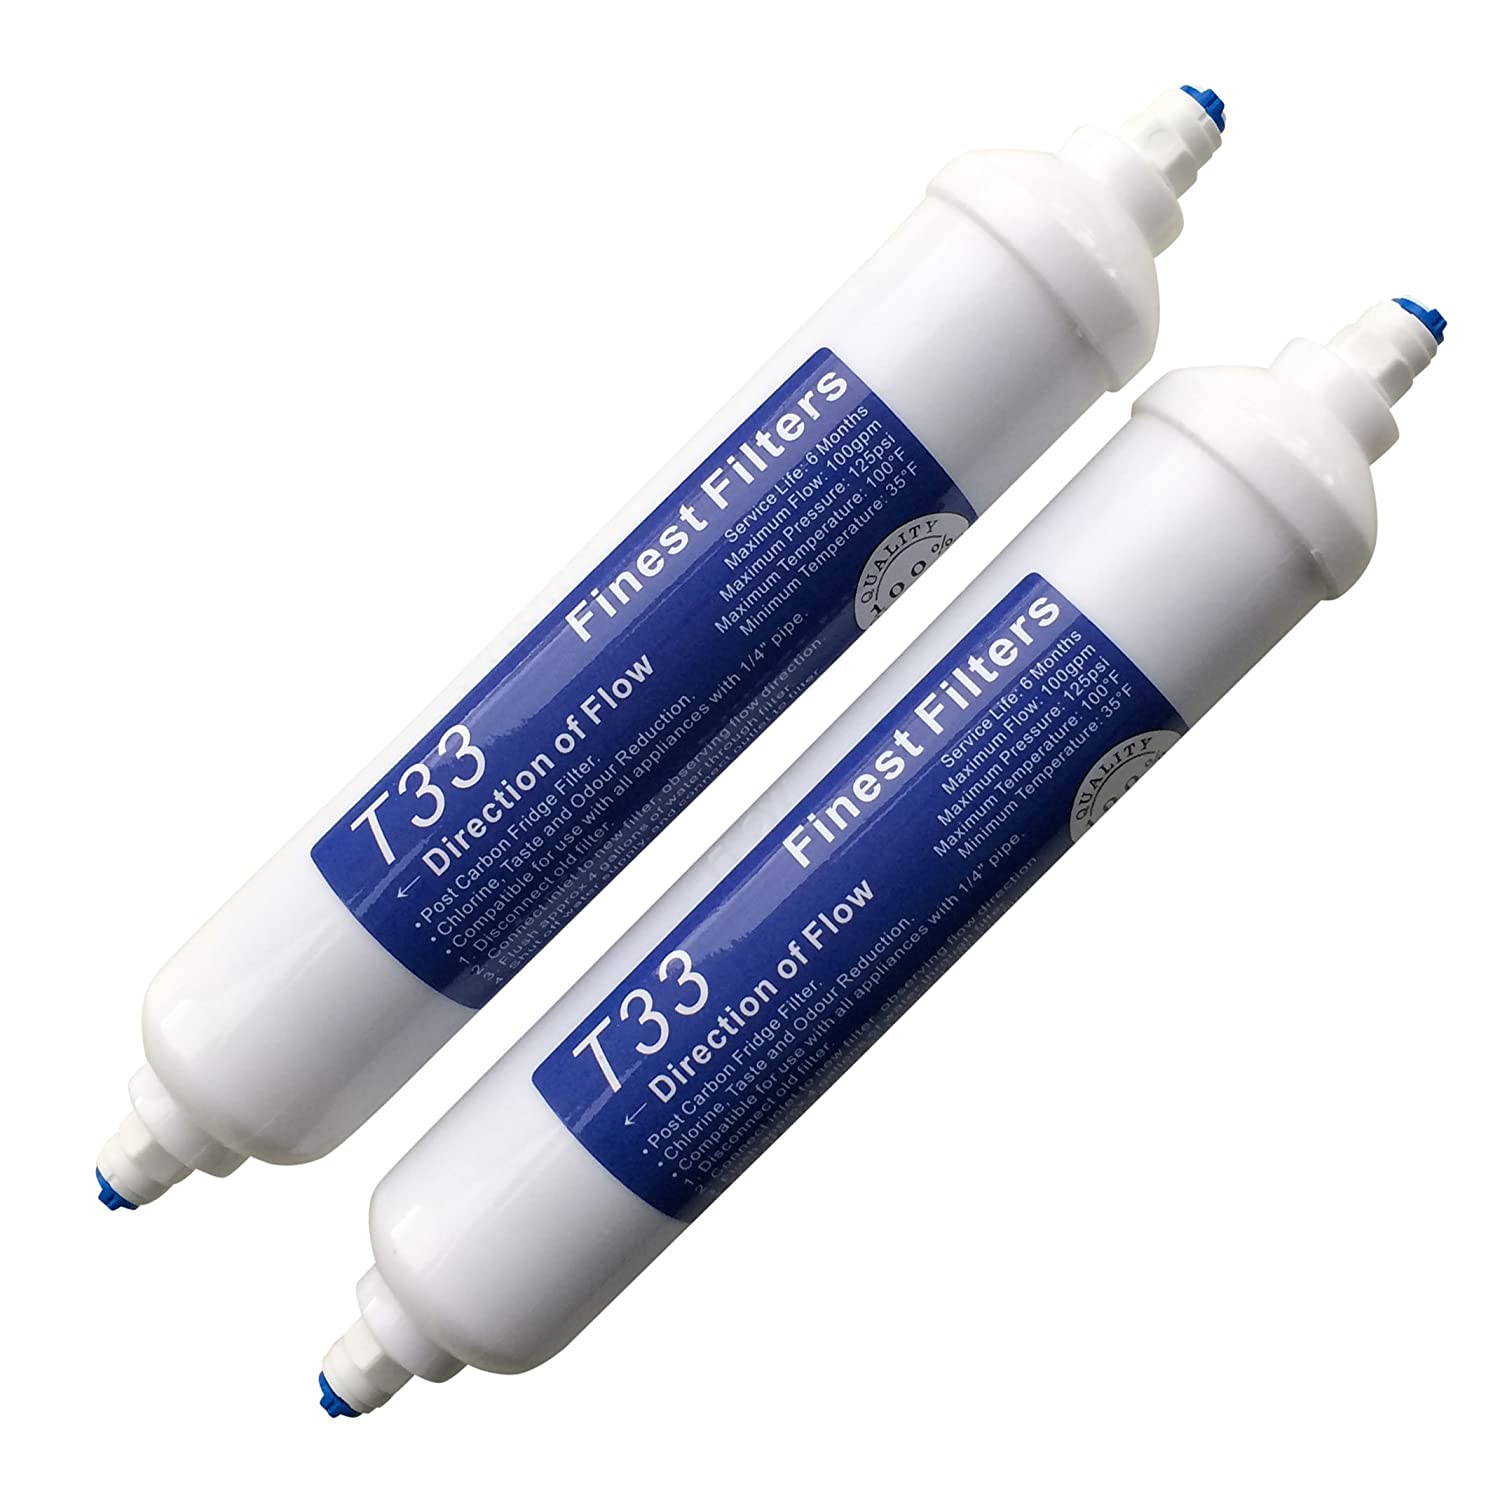 2 x In Line Fridge Water Filters Compatible with Samsung, Daewoo, LG etc Finest-Filters